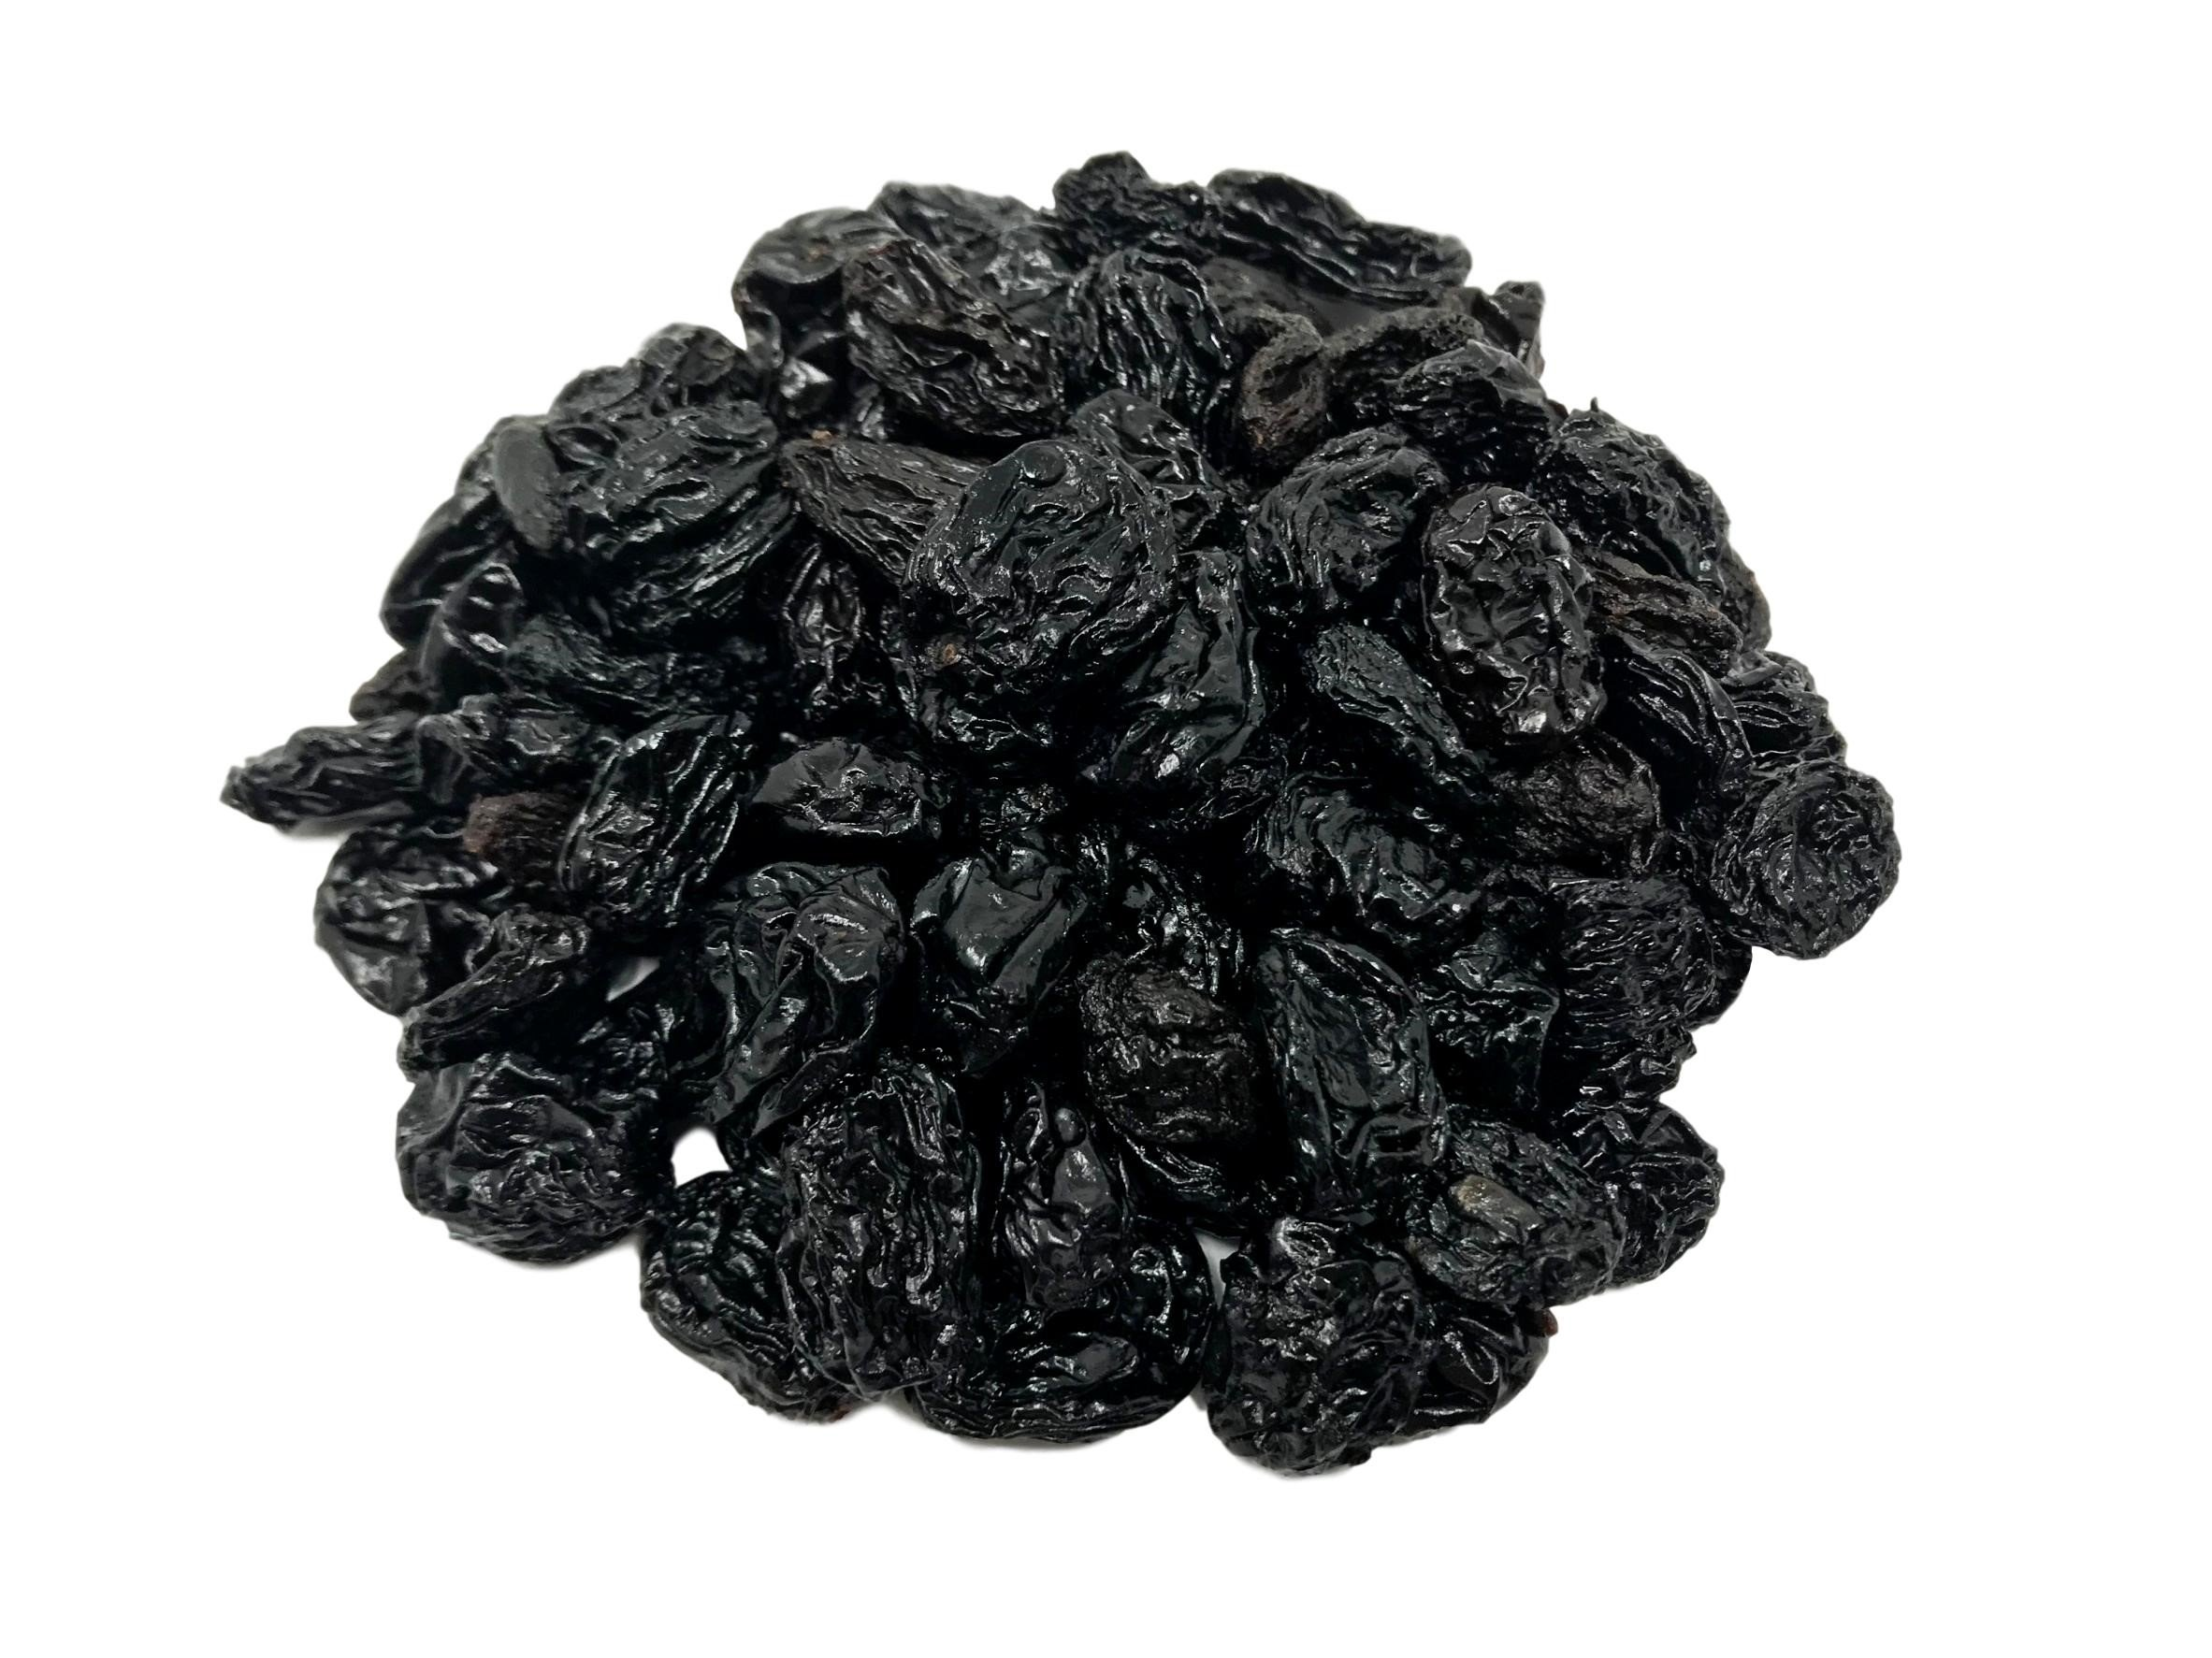 NUTS U.S. - California Black Raisins, Seedless, Unsulphured, Natural!!! (3 LBS) by NUTS - U.S. - HEALTH IN EVERY BITE !